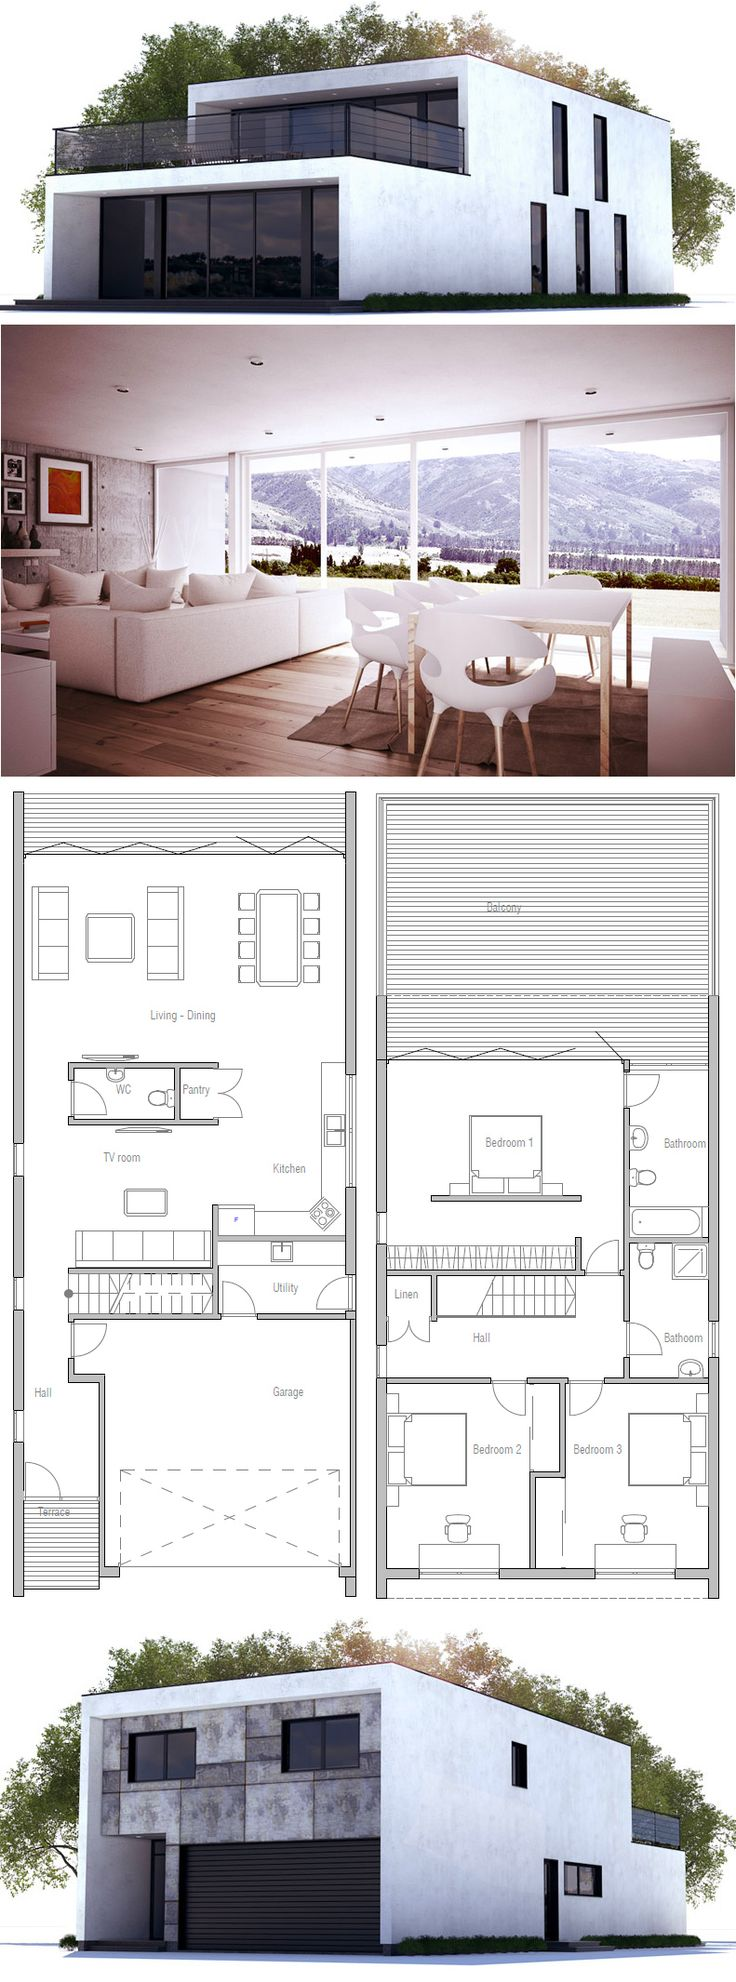 Home Plans Nice Interior And Exterior Home Design With: 188 Best Images About House Plans, Contemporary Modern